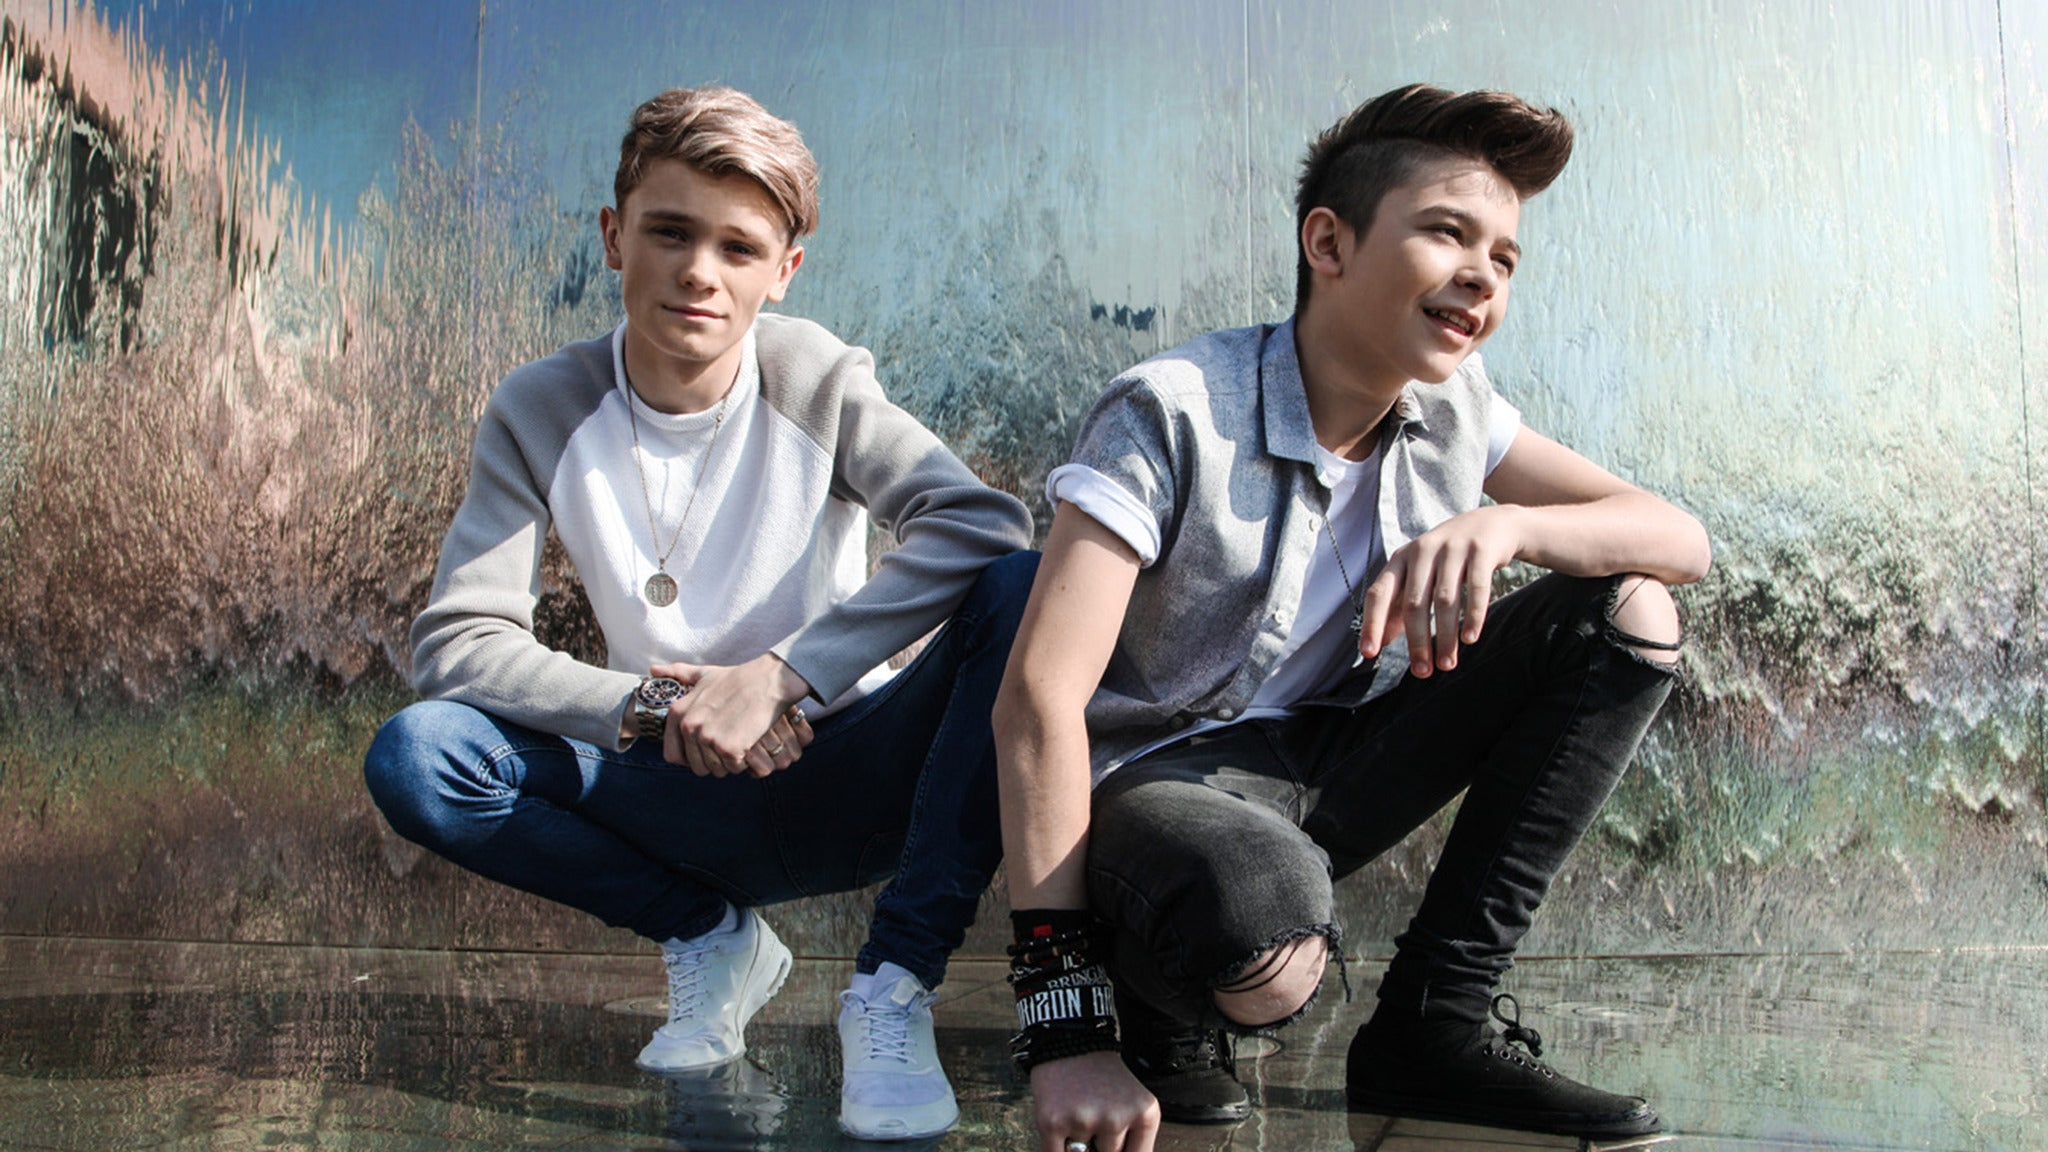 Bars and Melody at Holy Diver